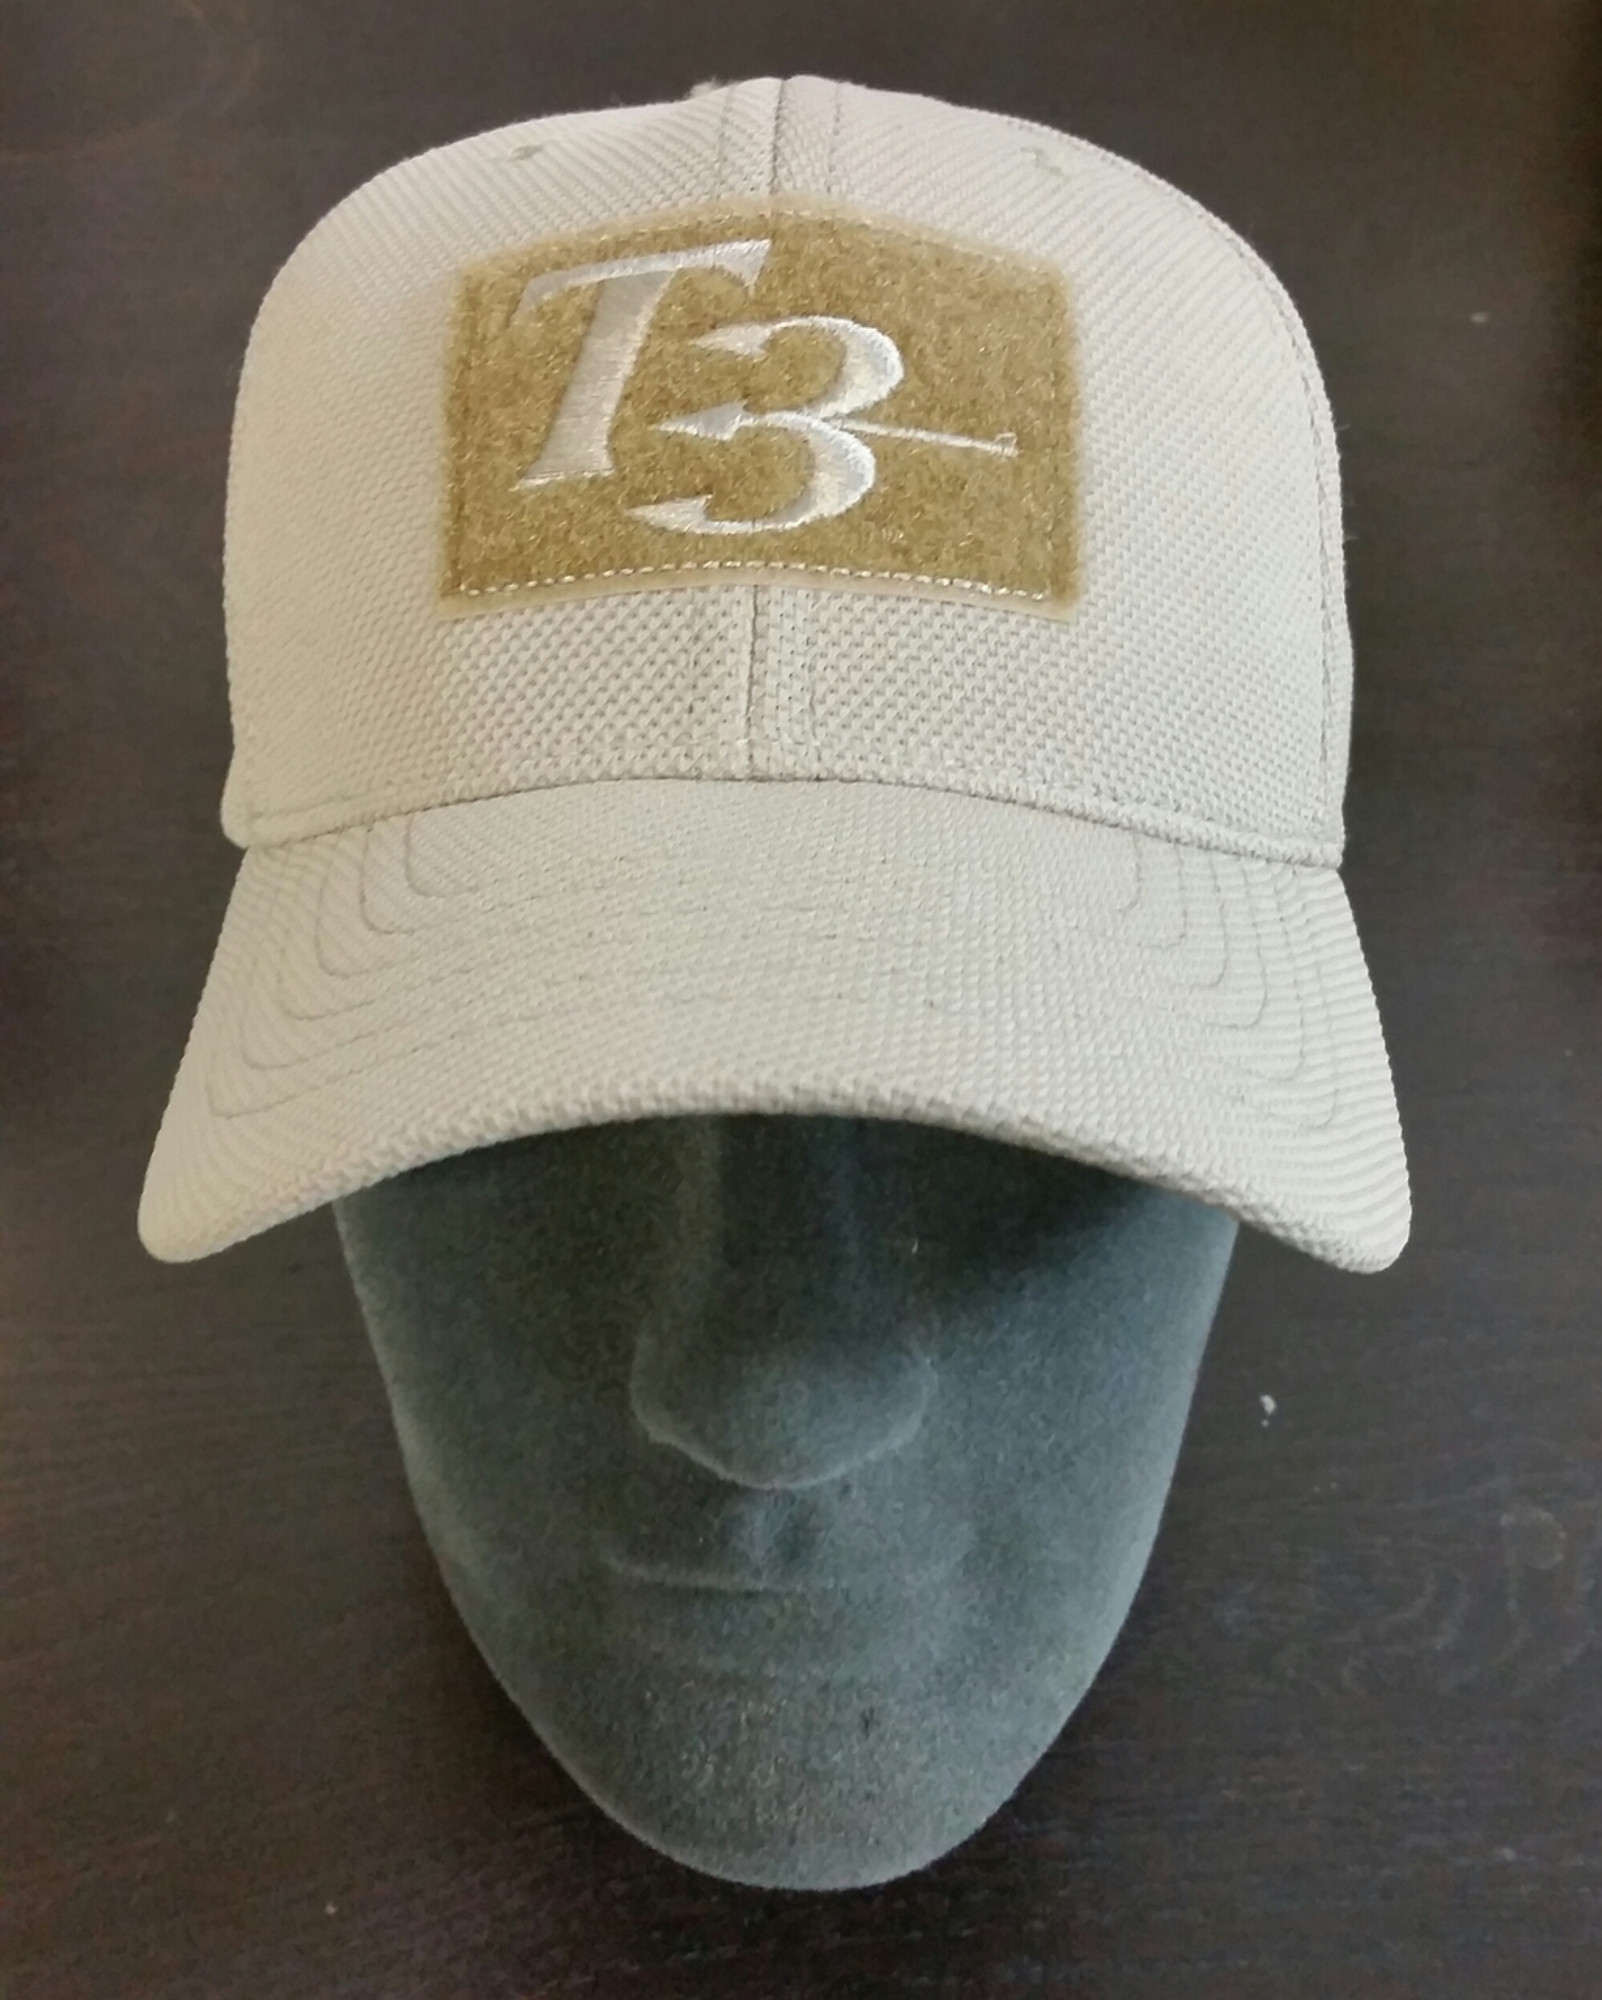 6c9996c04 T3 Embroidered Hat Adjustable, Khaki Color, Velcro patches on Front ...